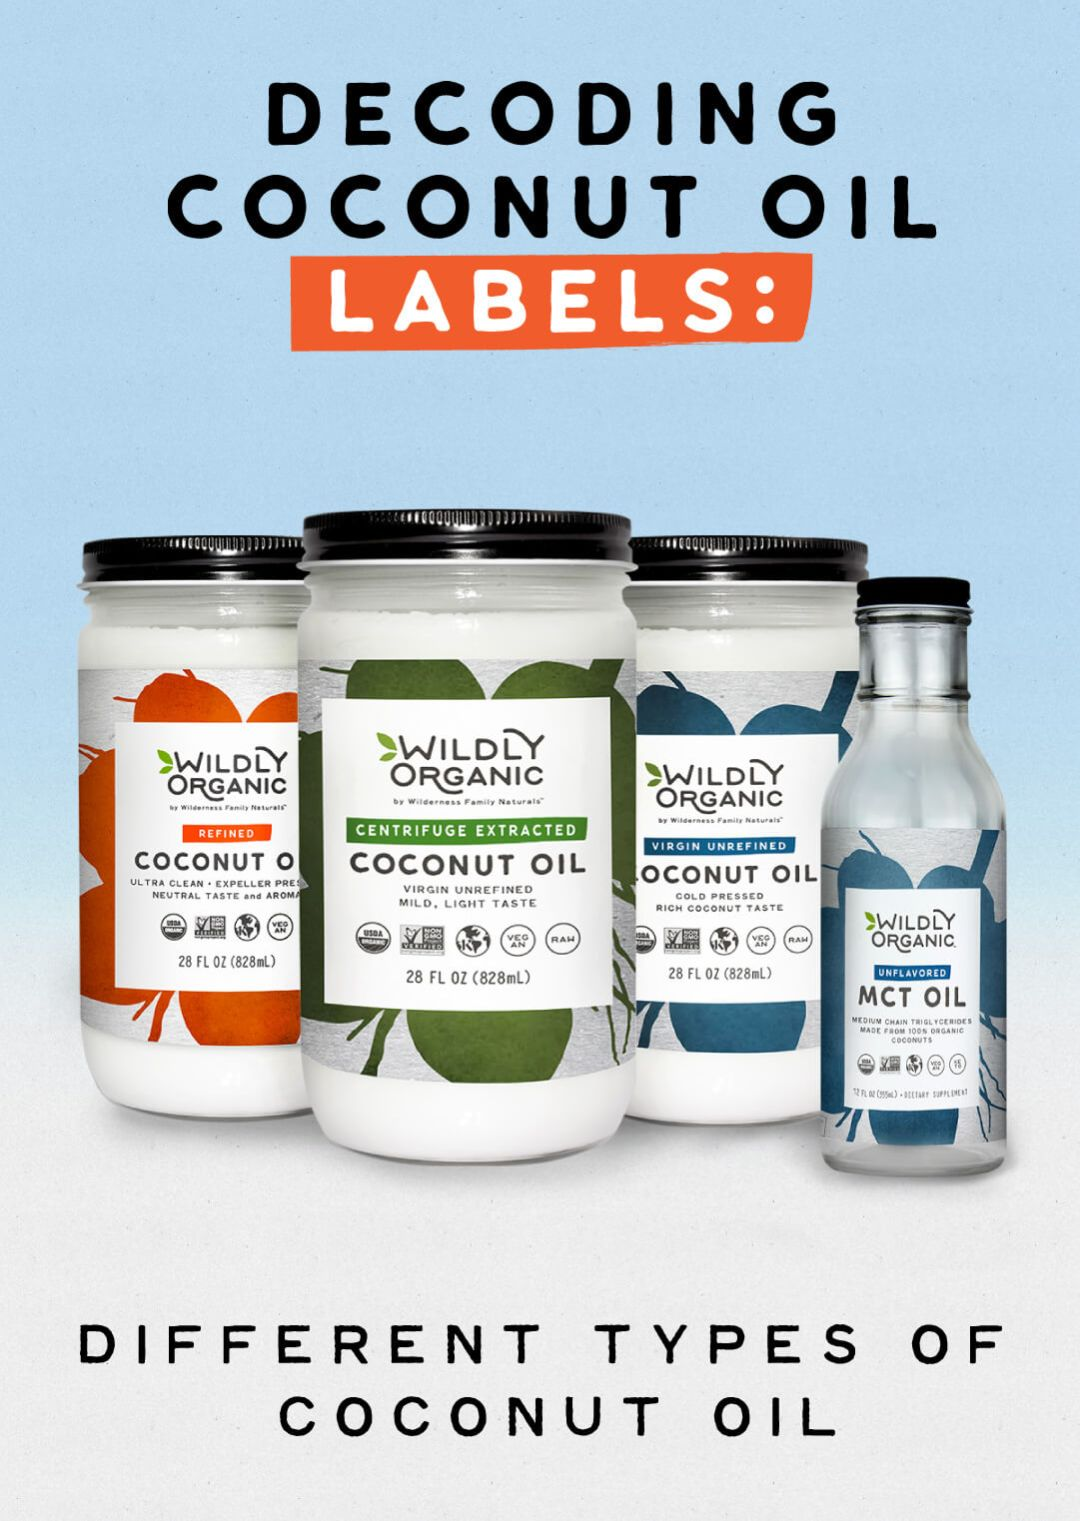 Decoding Coconut Oil Labels- blog post image